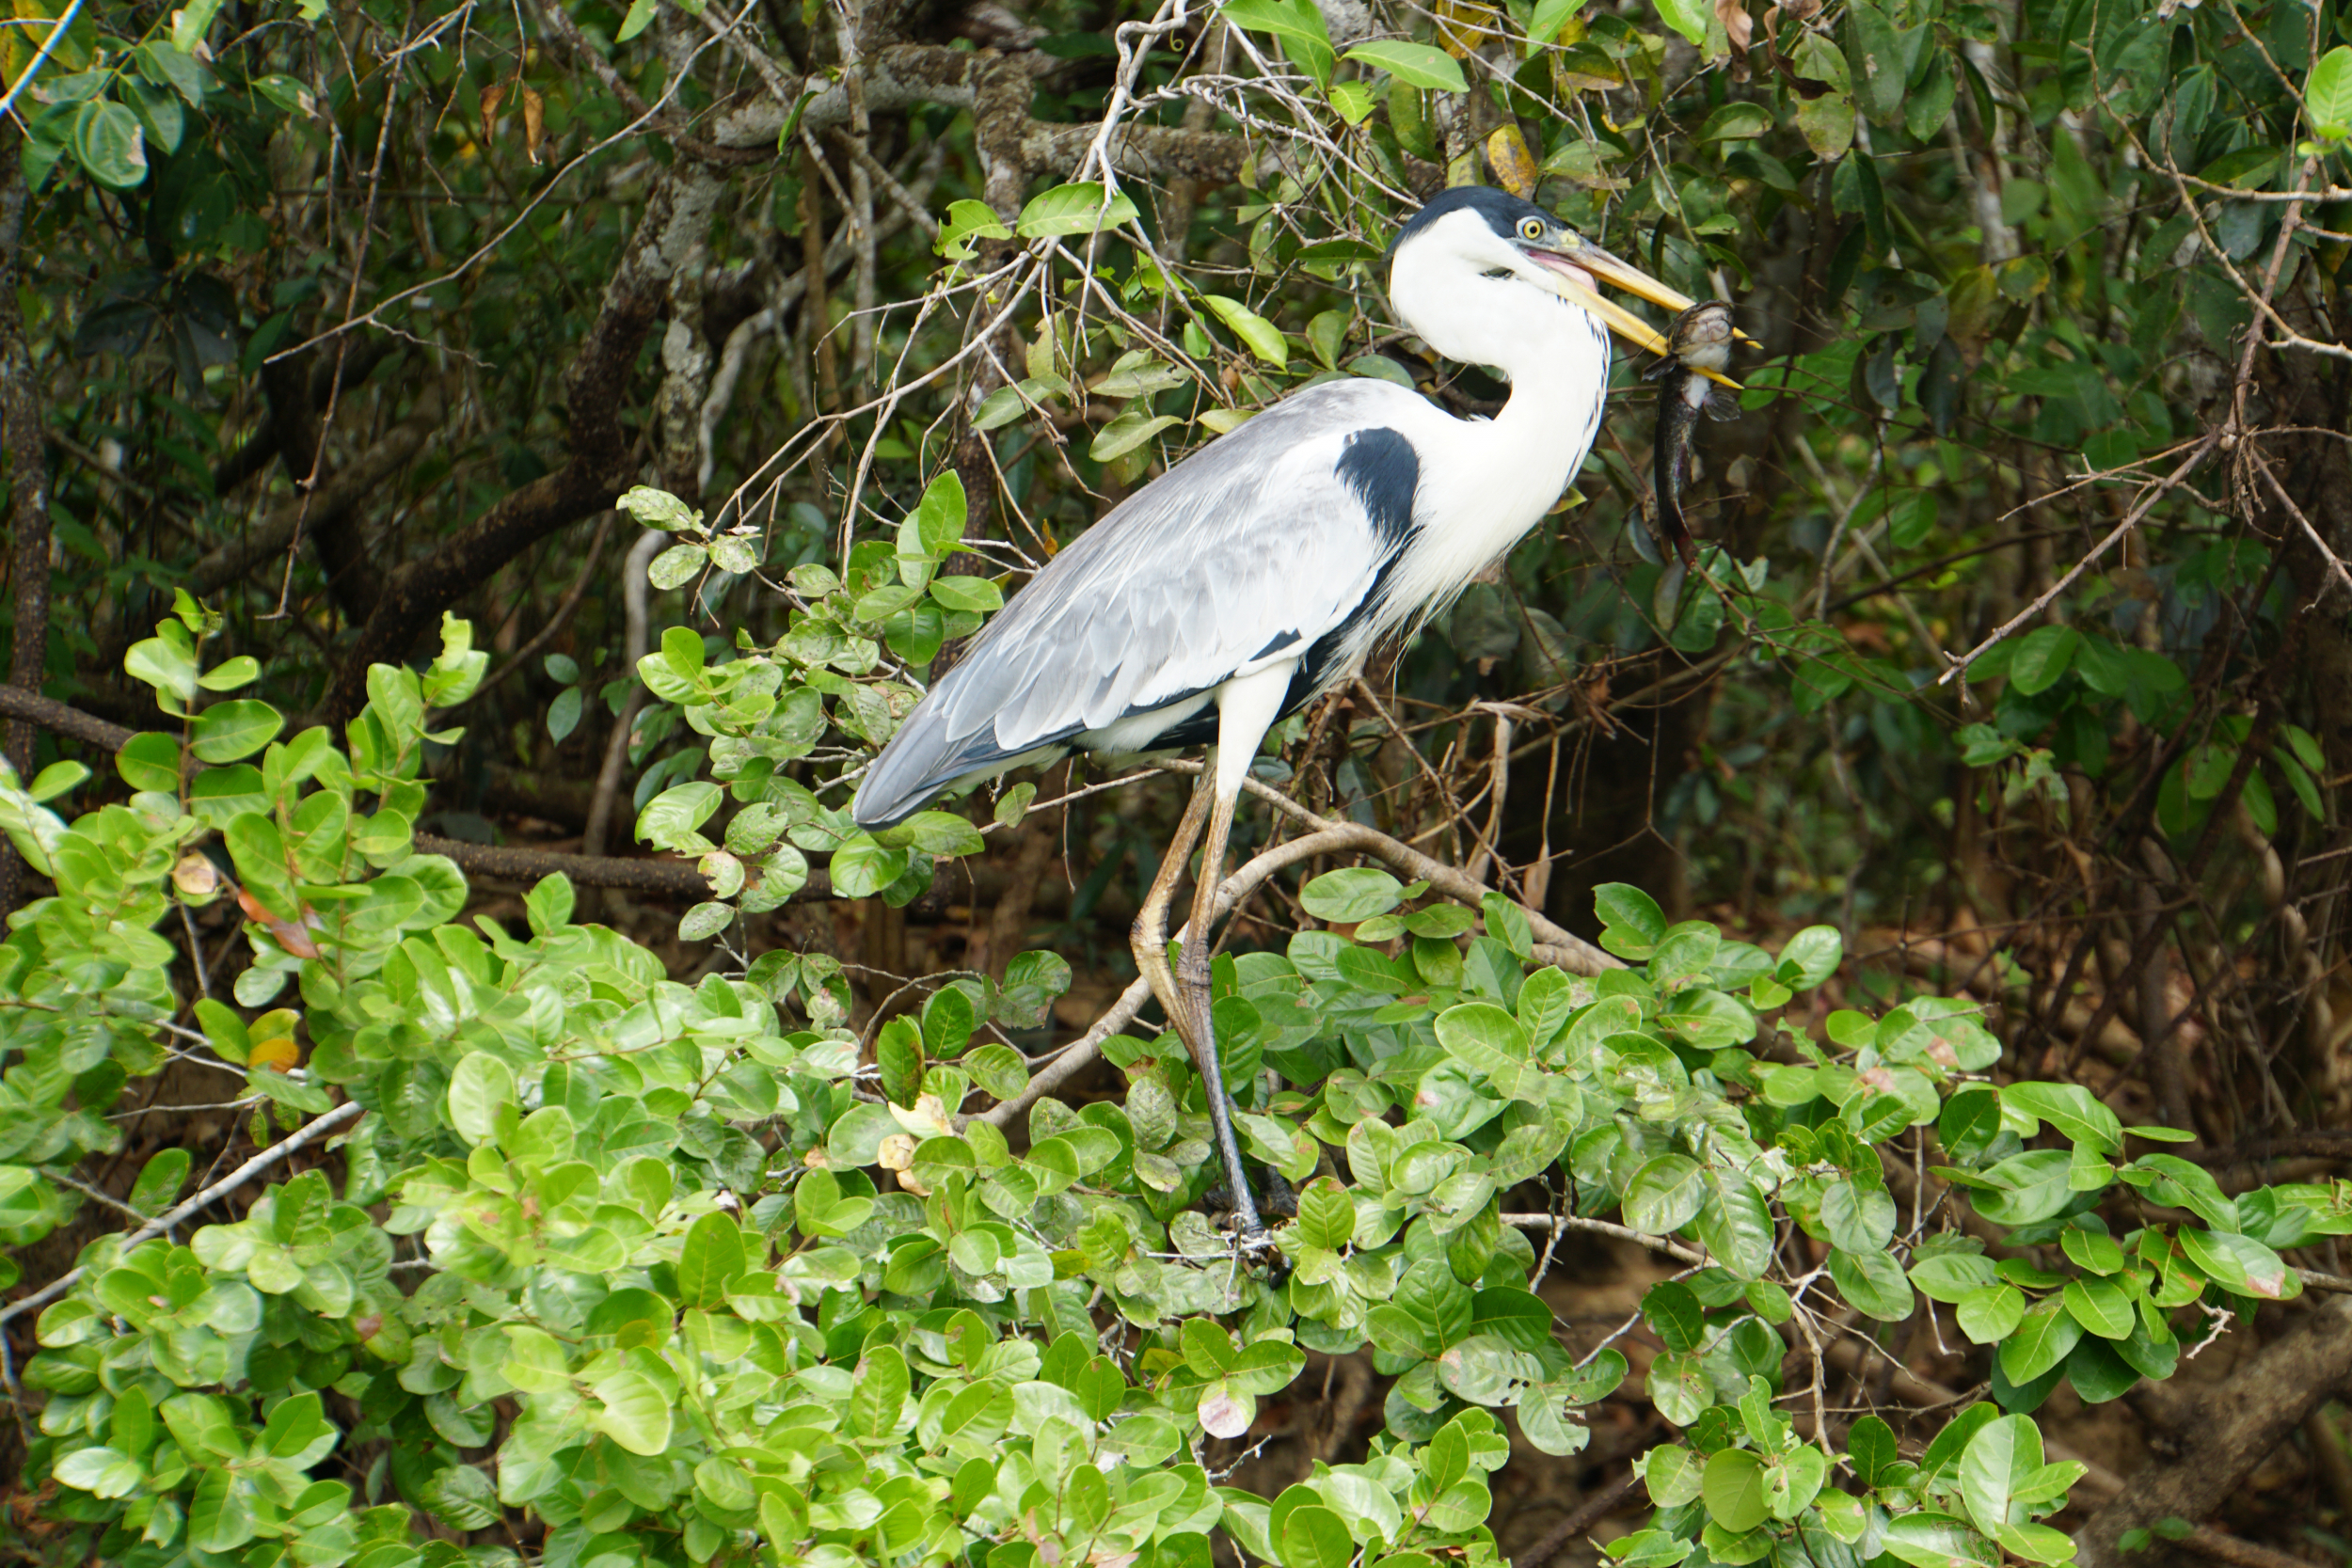 24. Heron with dinner